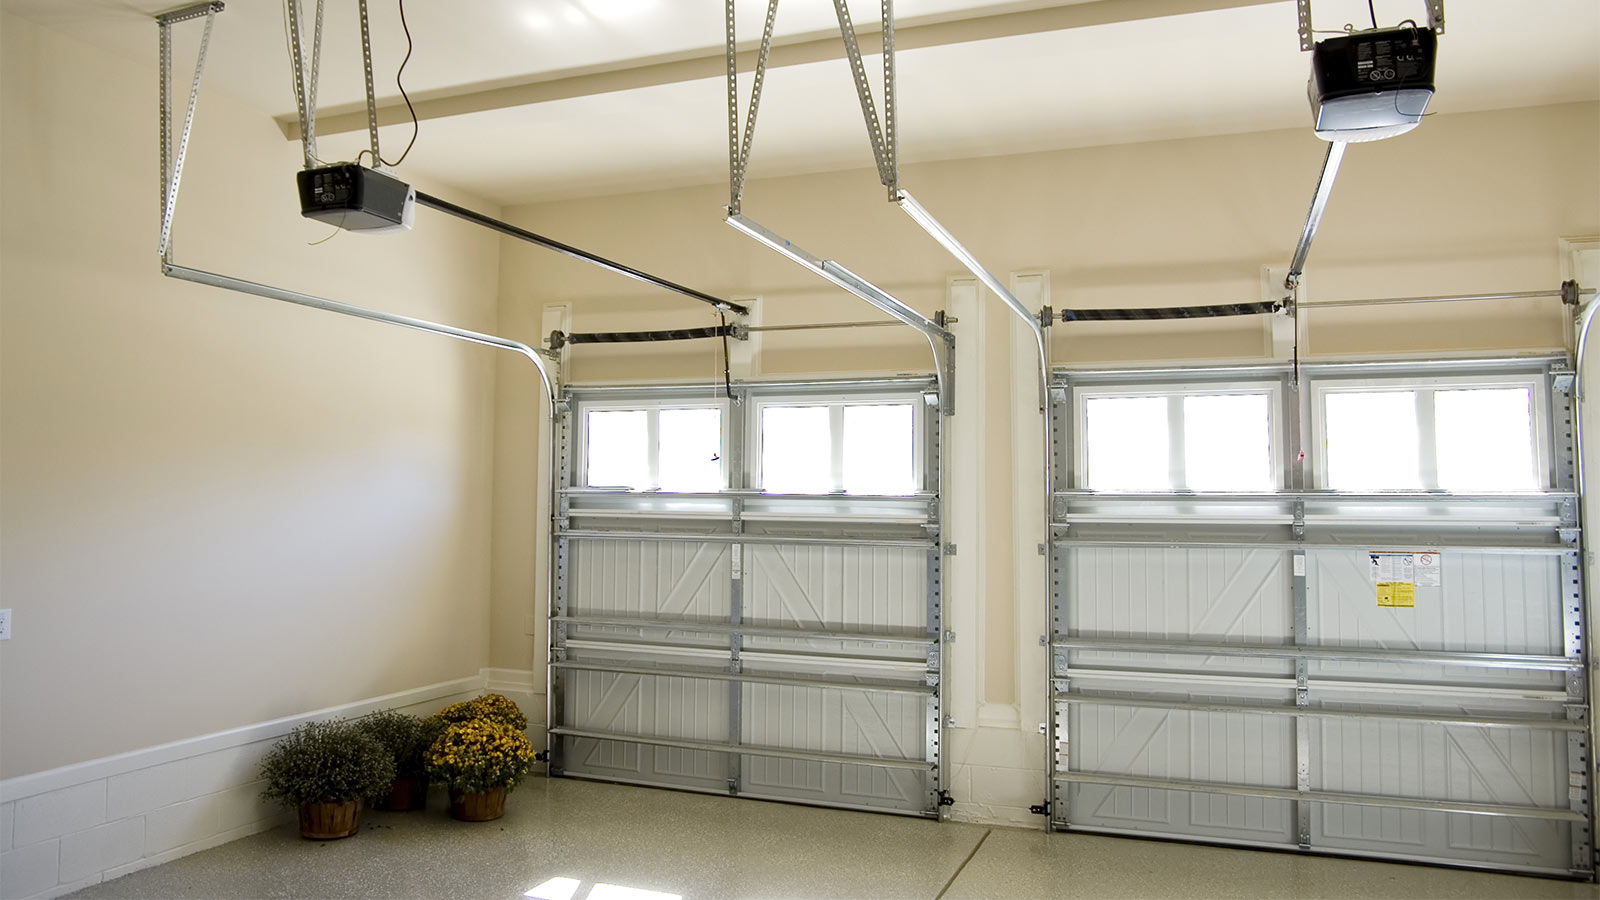 Sectional Garage Doors from Up and Over Doors Maidstone suppliers.